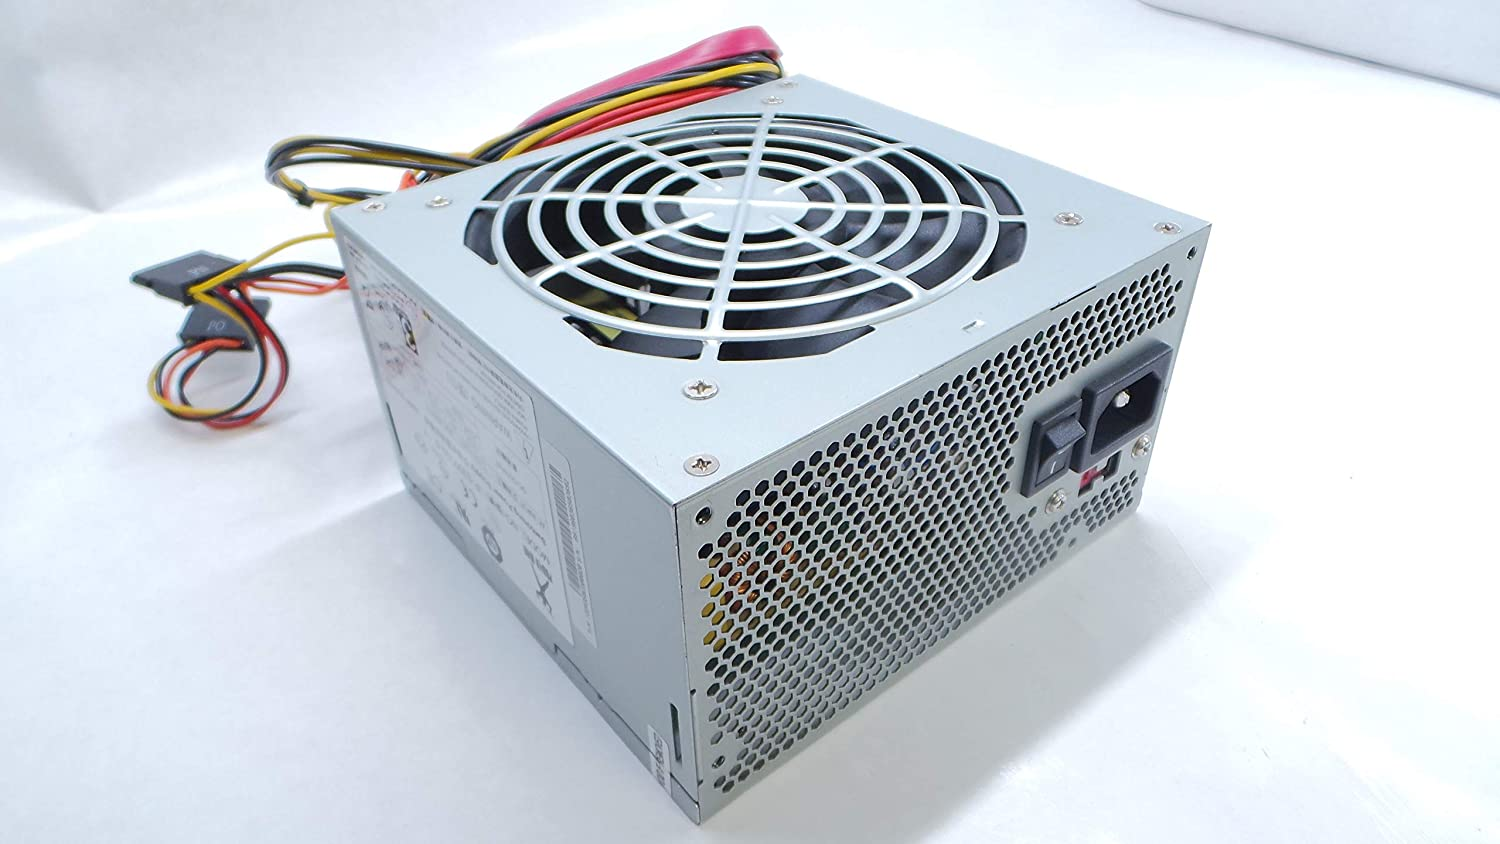 Power Man IP-S350CQ2 ATX Power Supply